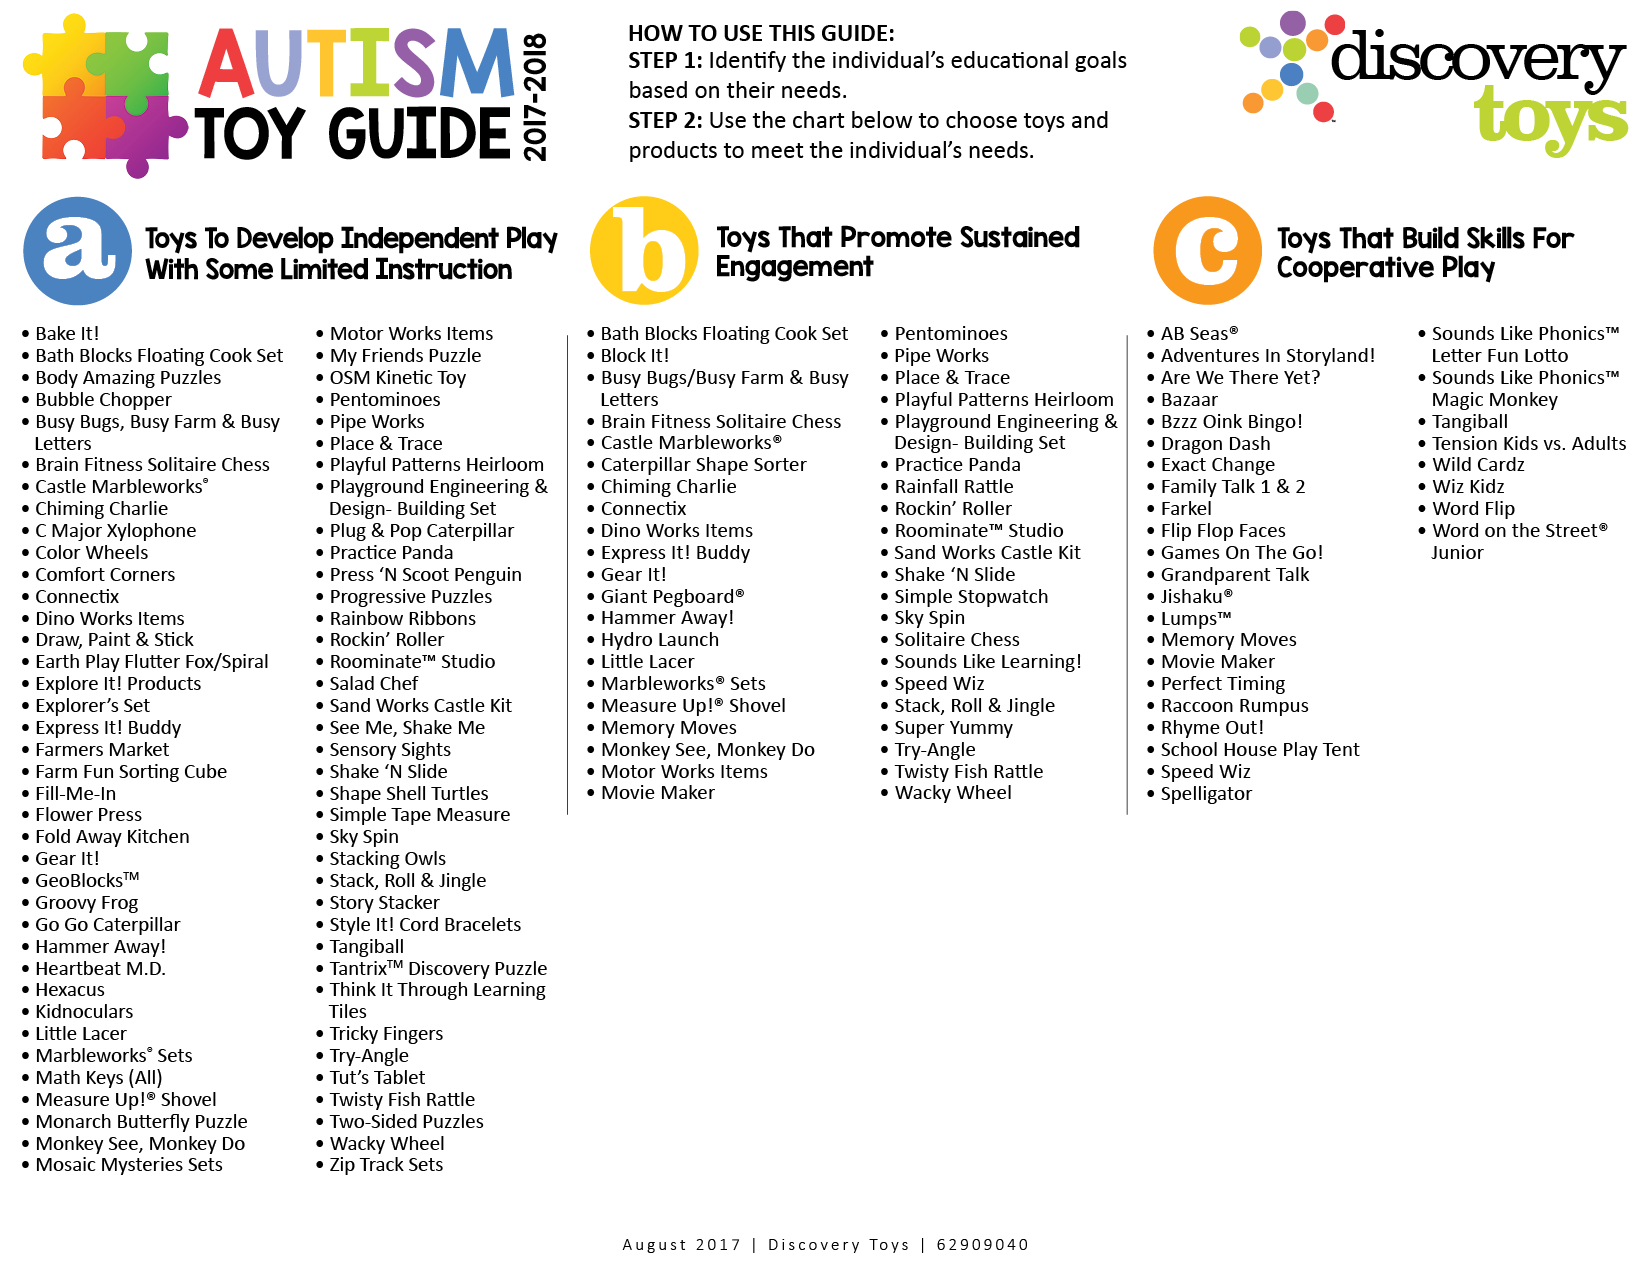 Autism Toy Guide – Discovery Toys